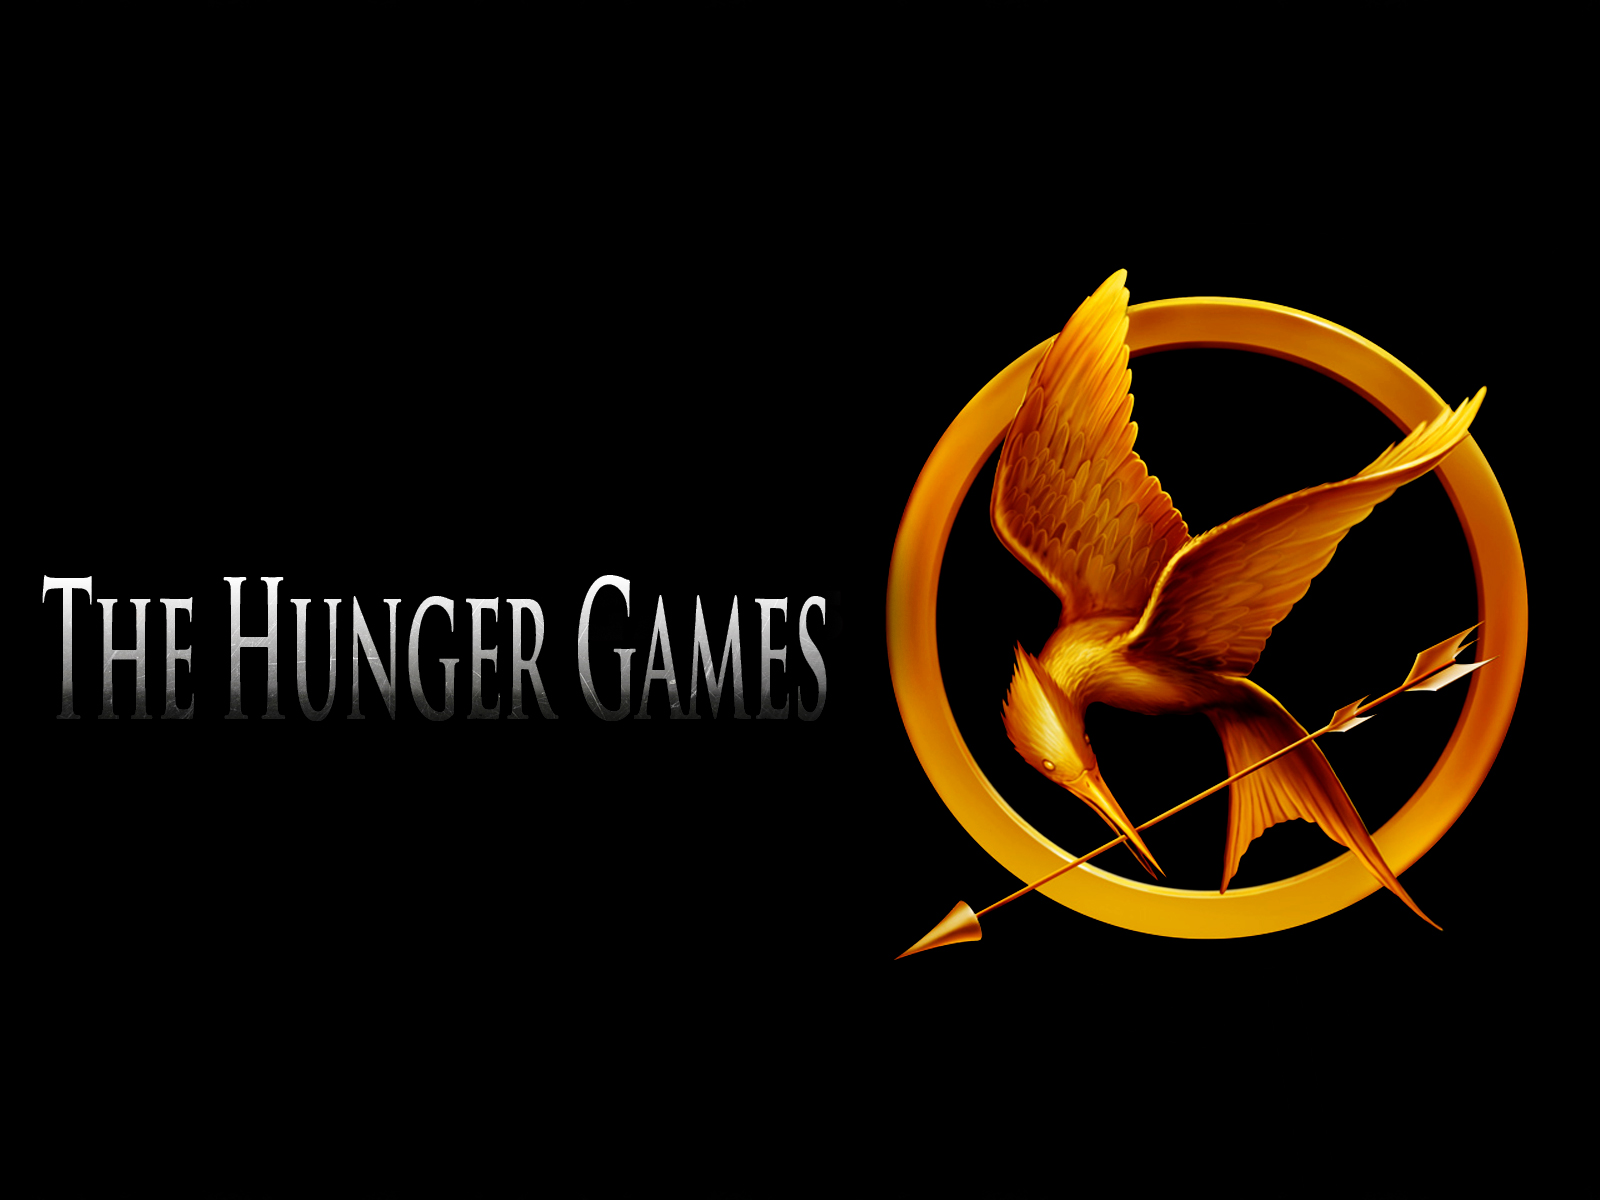 Record Breaking Movie The Hunger Games Posters HD Wallpapers 1600x1200